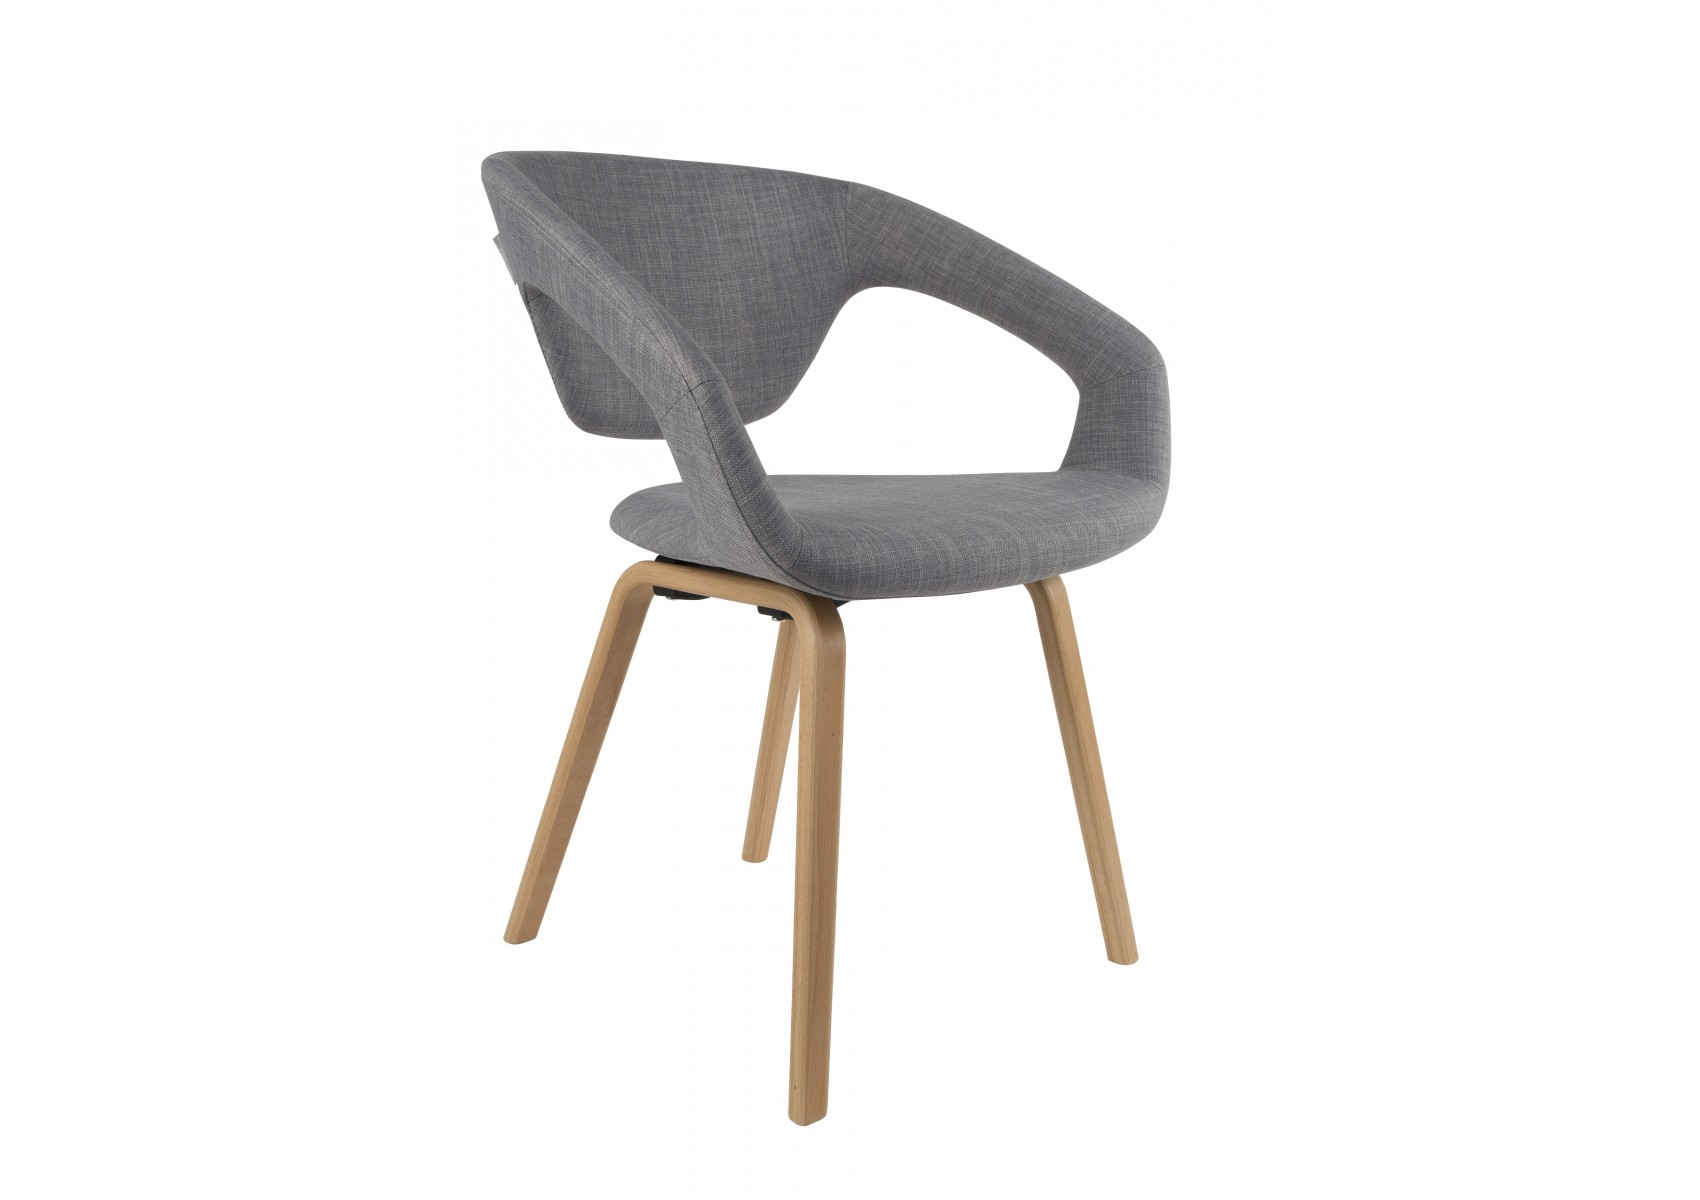 Chaise design flex back par zuiver boite design for Modele de chaises design